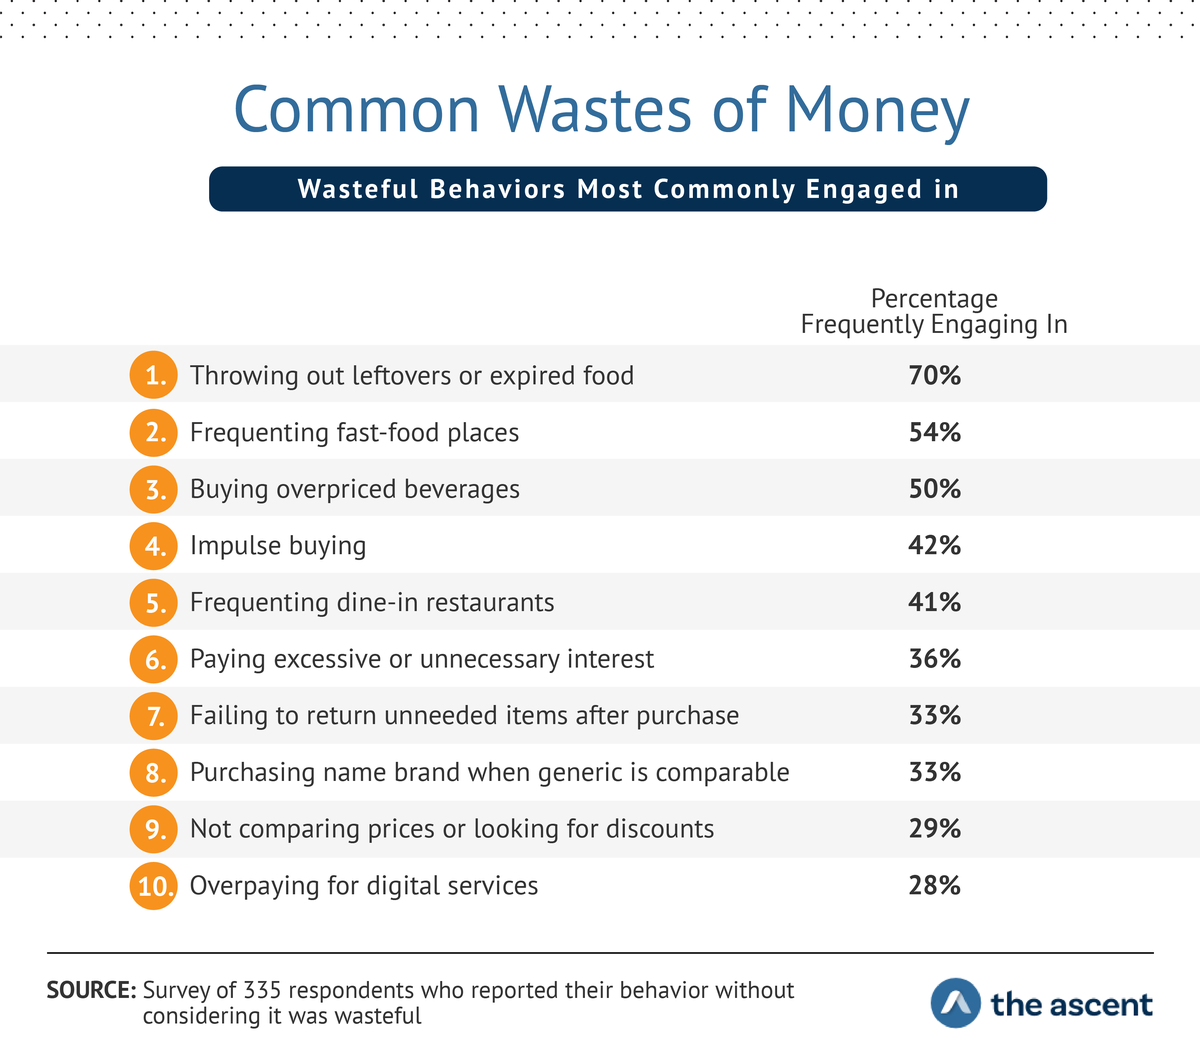 Common Wastes of Money: Wasteful Behaviors Mostly Commonly Engaged In...Throwing out leftovers or expired foods	70% Frequenting fast food places	54% Buying overpriced beverages	50% Impulse buying	42% Frequenting dine-in restaurants	41% Paying excessive or unnecessary interest	36% Failing to return unneeded items after purchase	33% Purchasing name brand when a generic is equally good	33% Not comparing prices or looking for discounts	29% Overpaying for digital services	28%